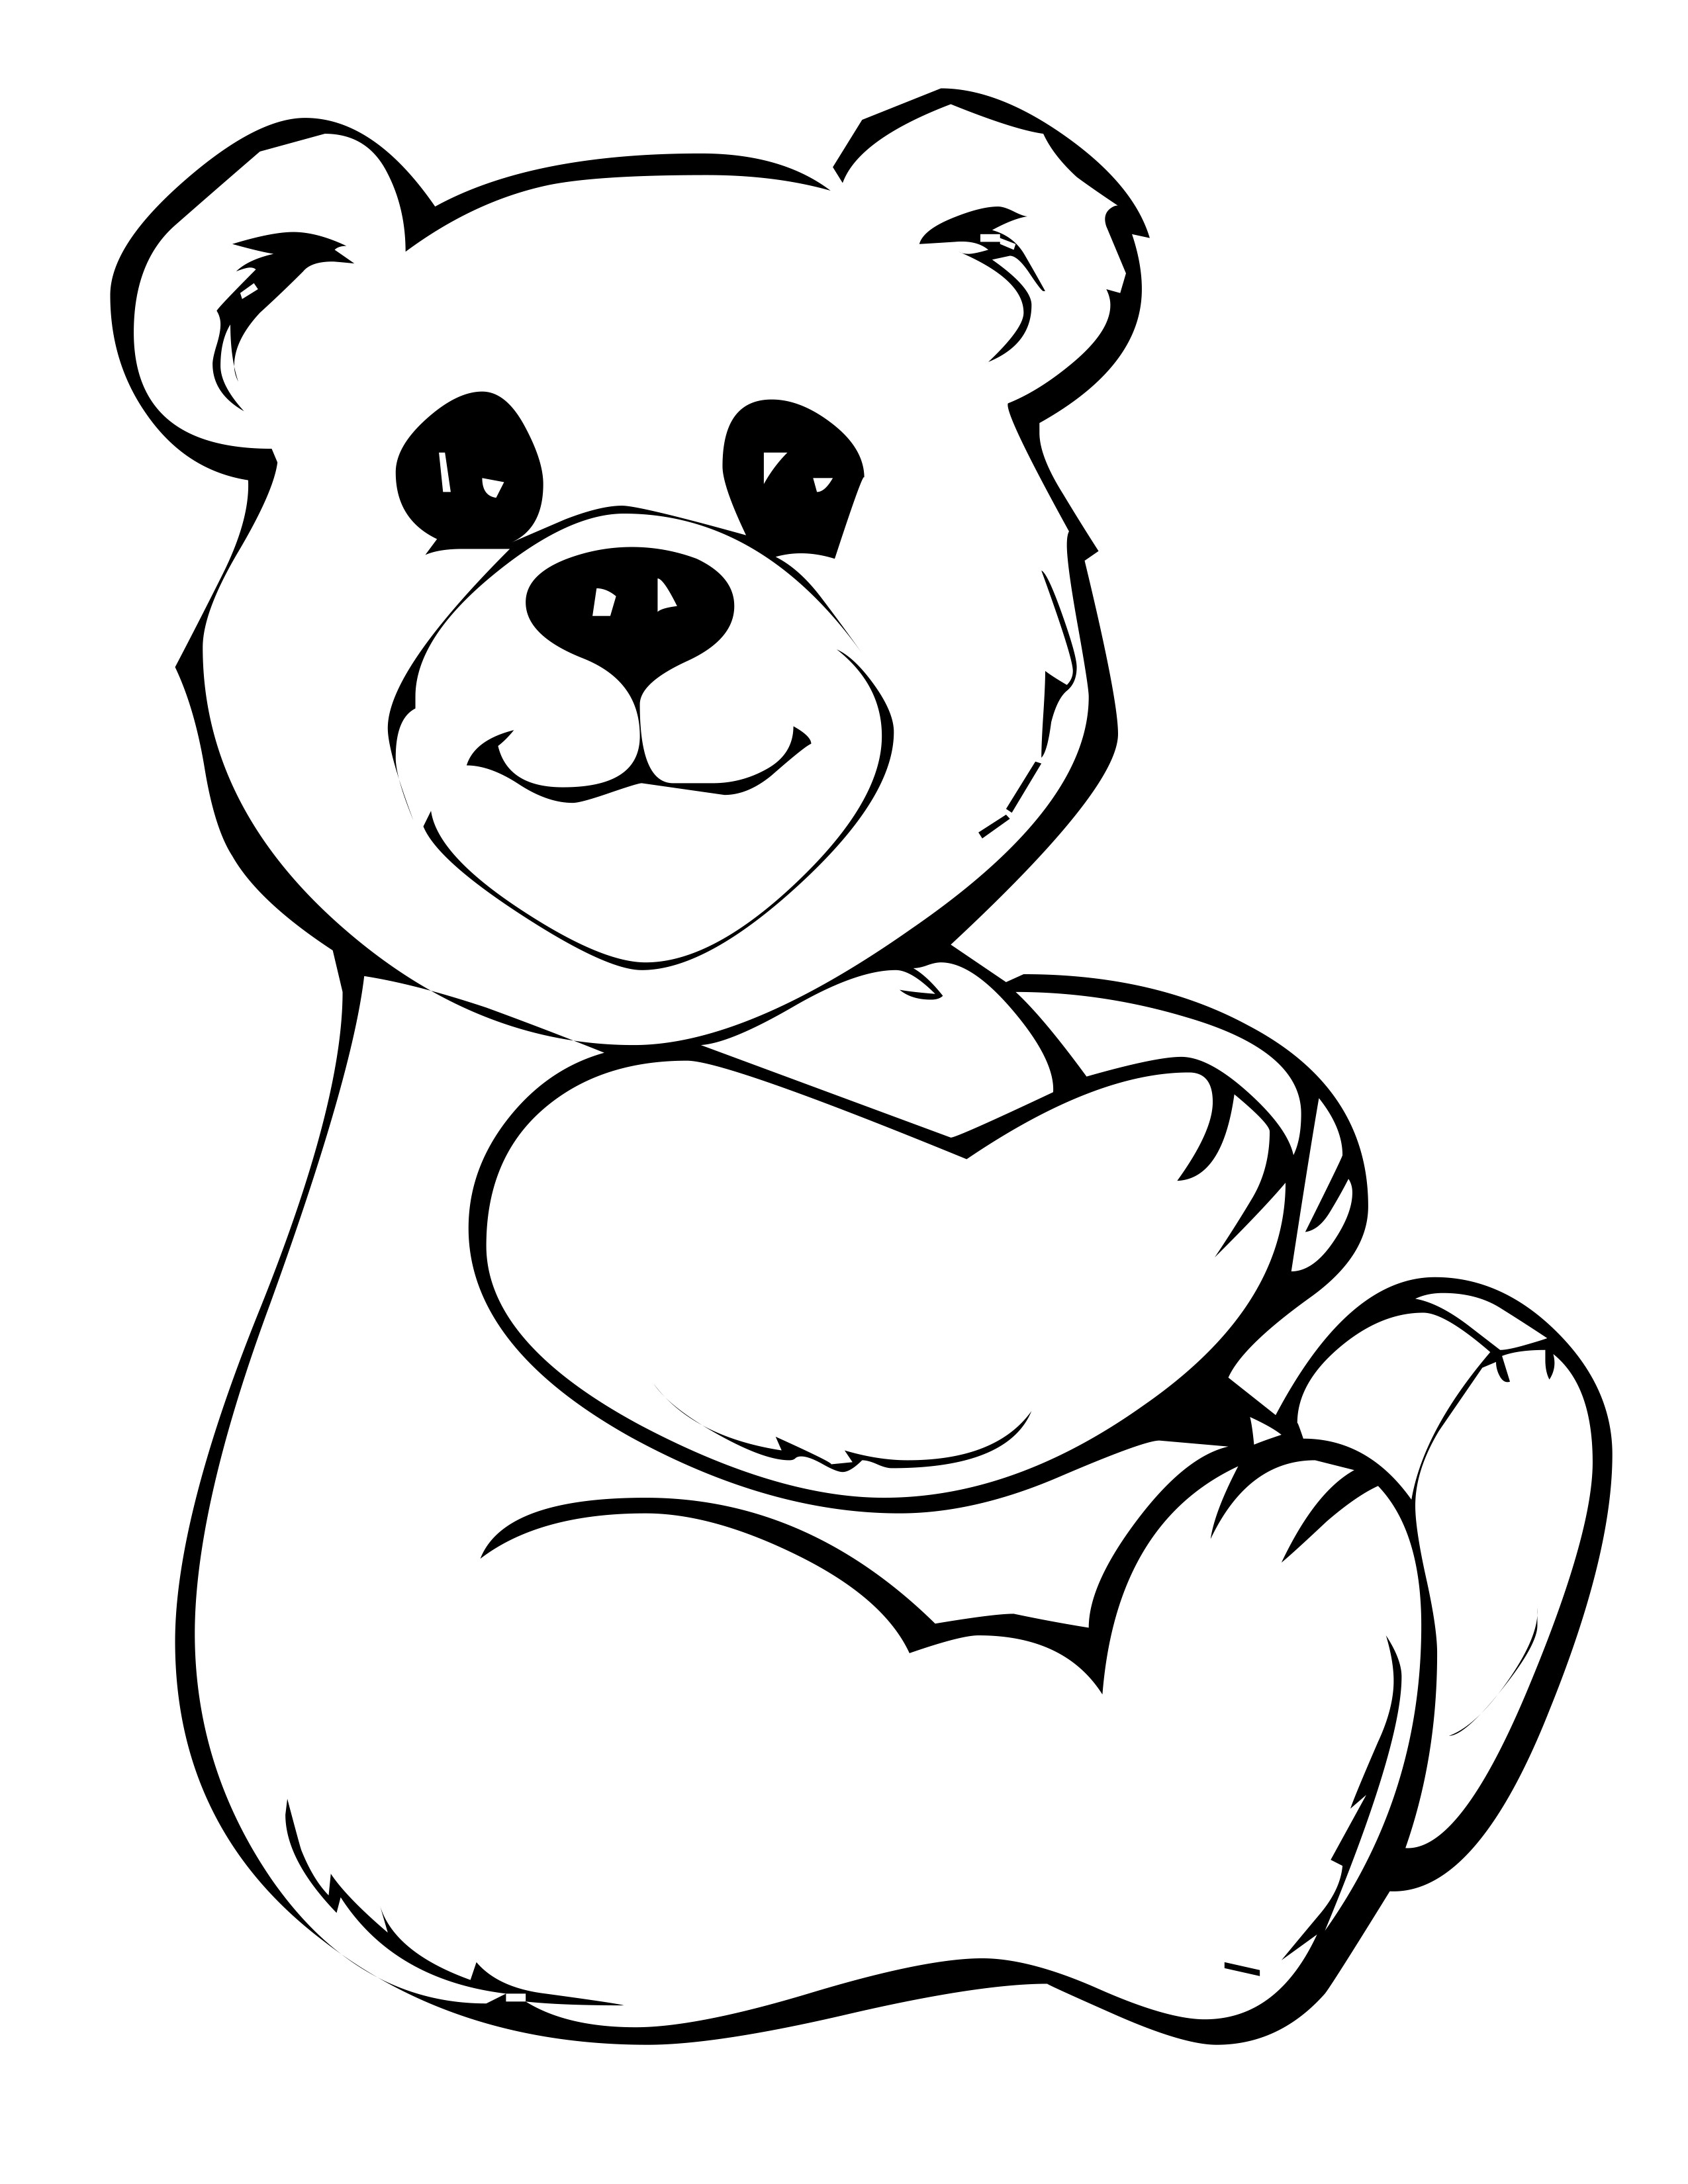 2550x3300 Study Free Printable Teddy Bear Coloring Pages For Kids Kids